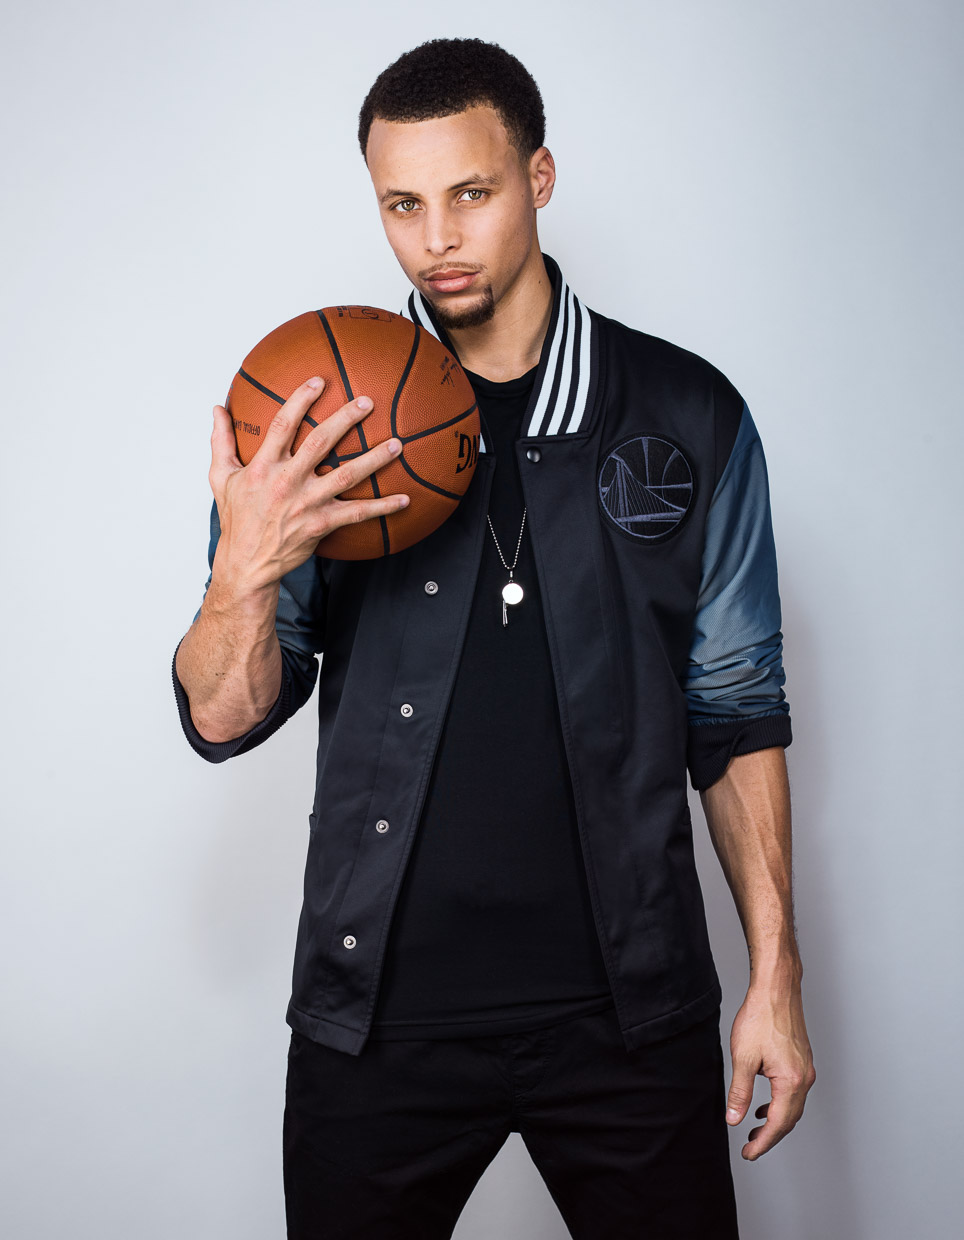 Stephen Curry. ESPN The Magazine.